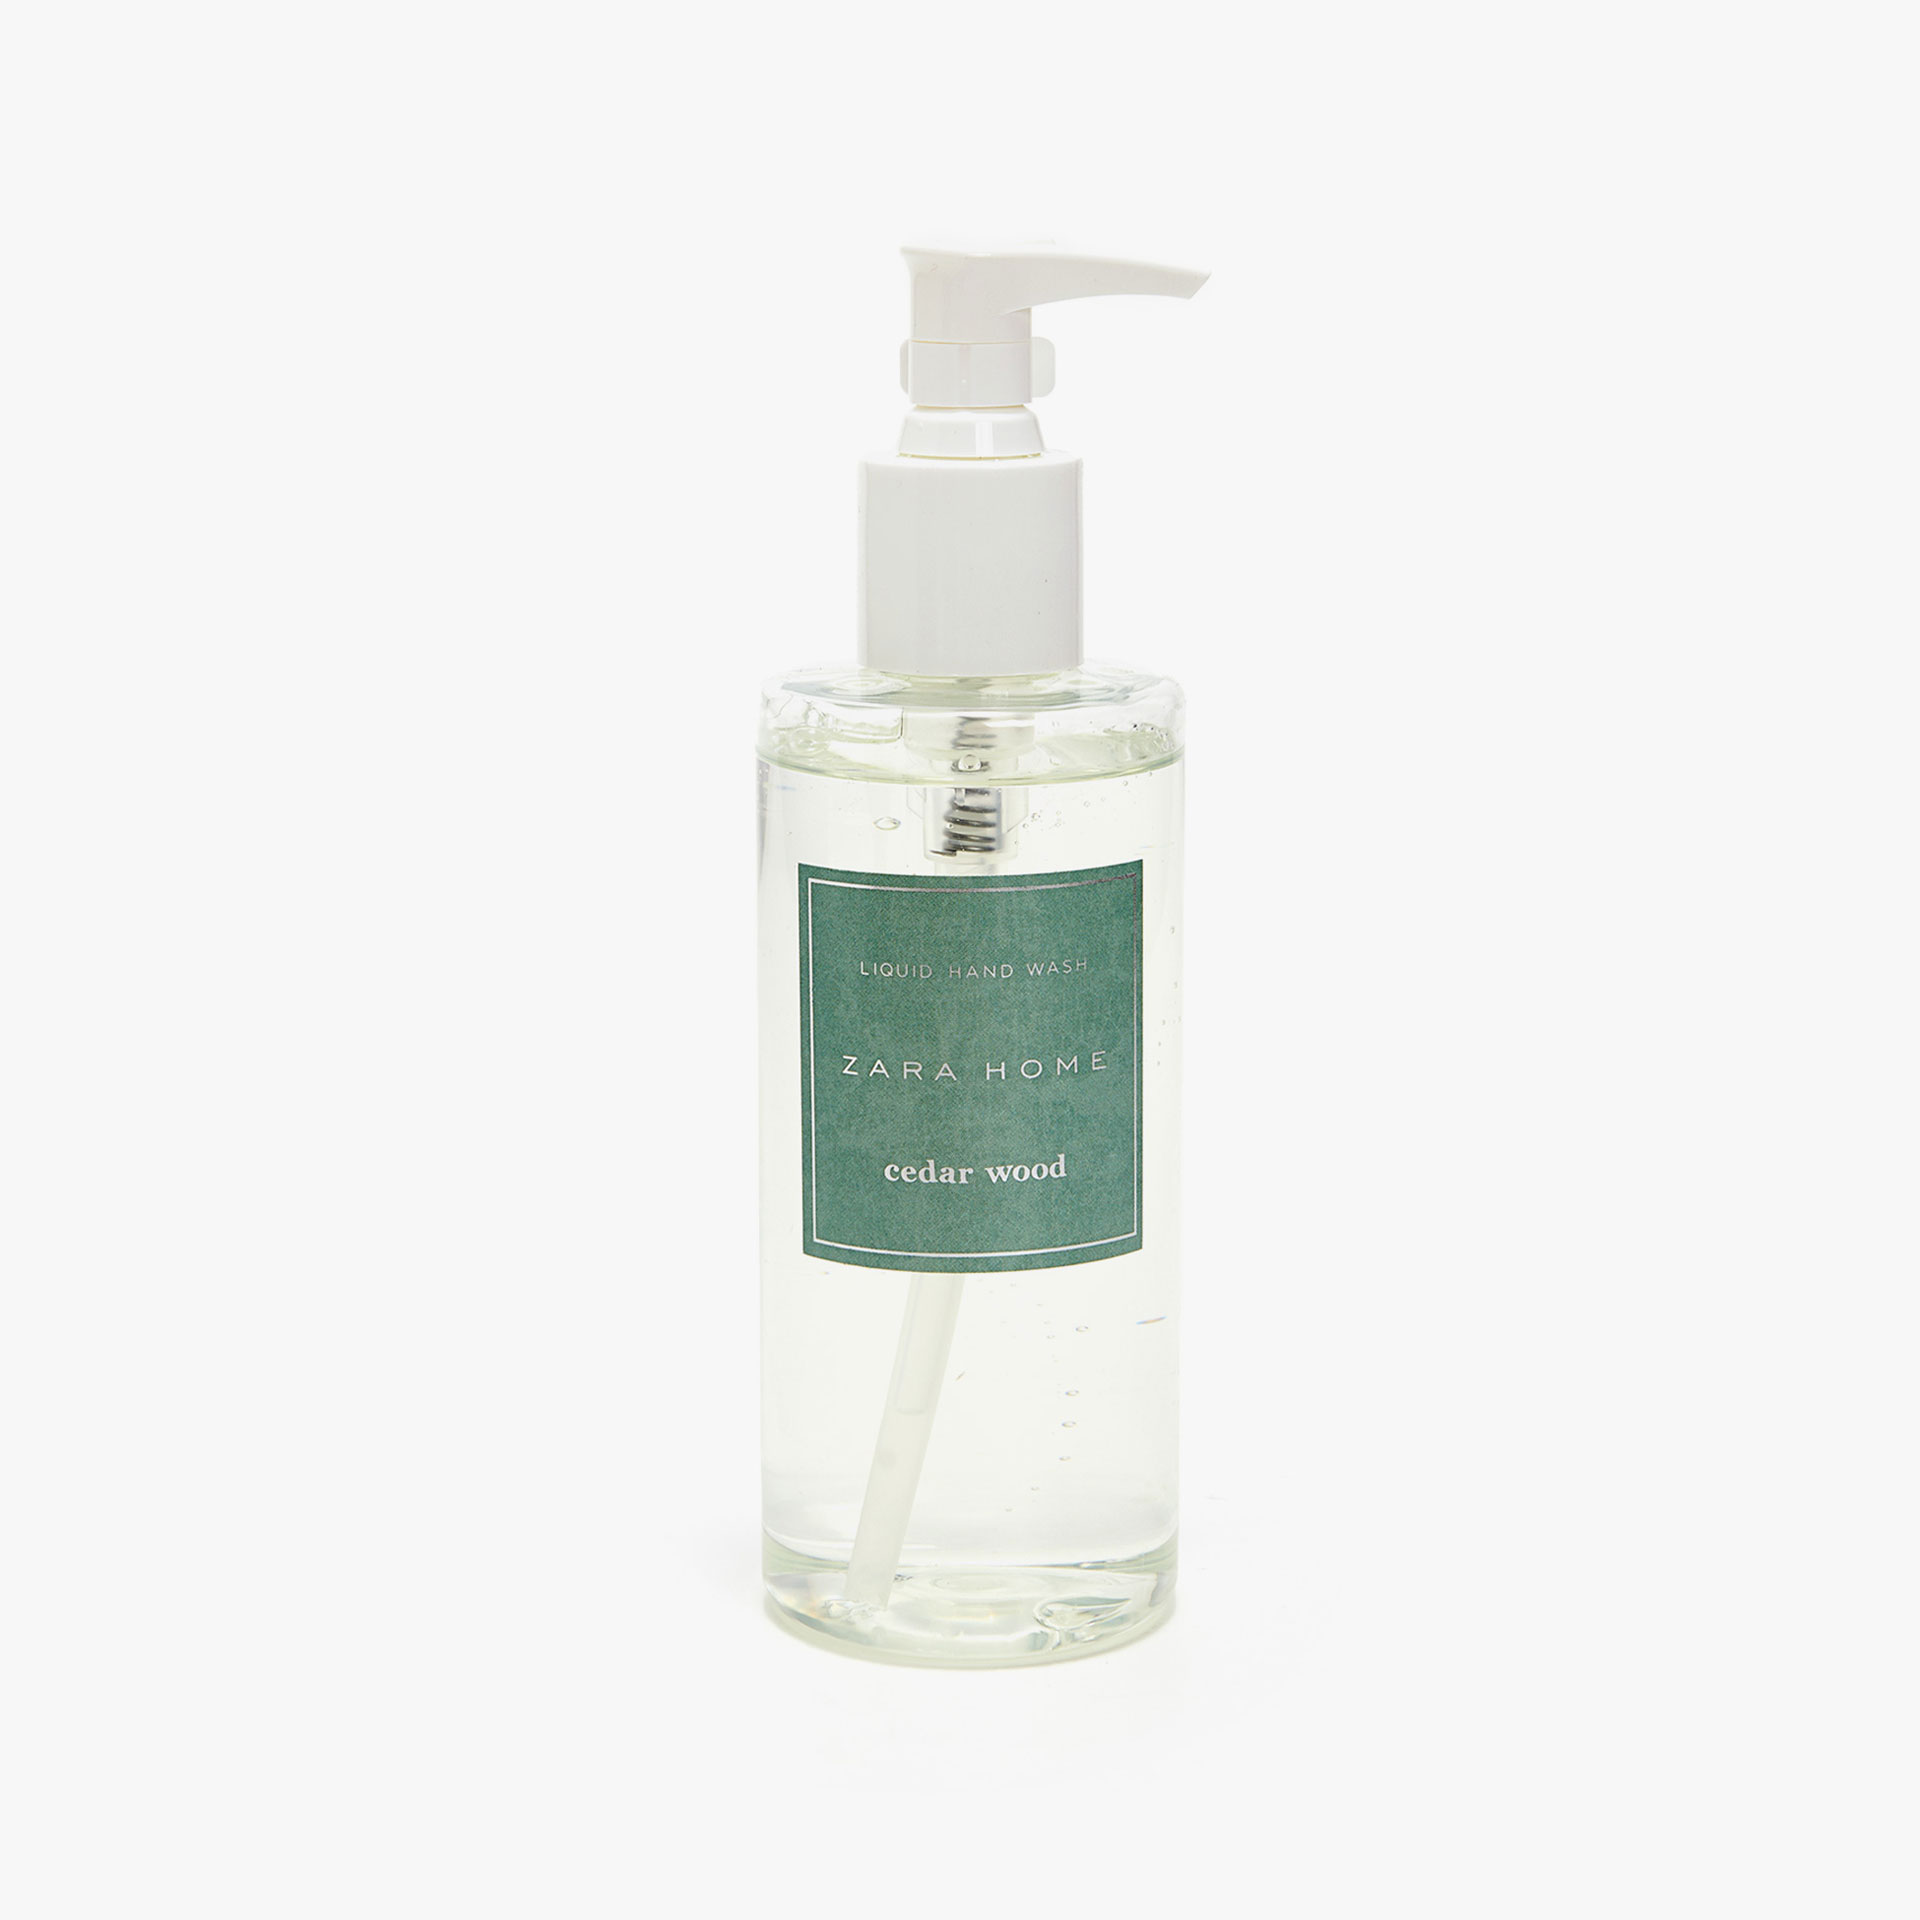 CEDAR WOOD LIQUID HAND SOAP (250 ML)